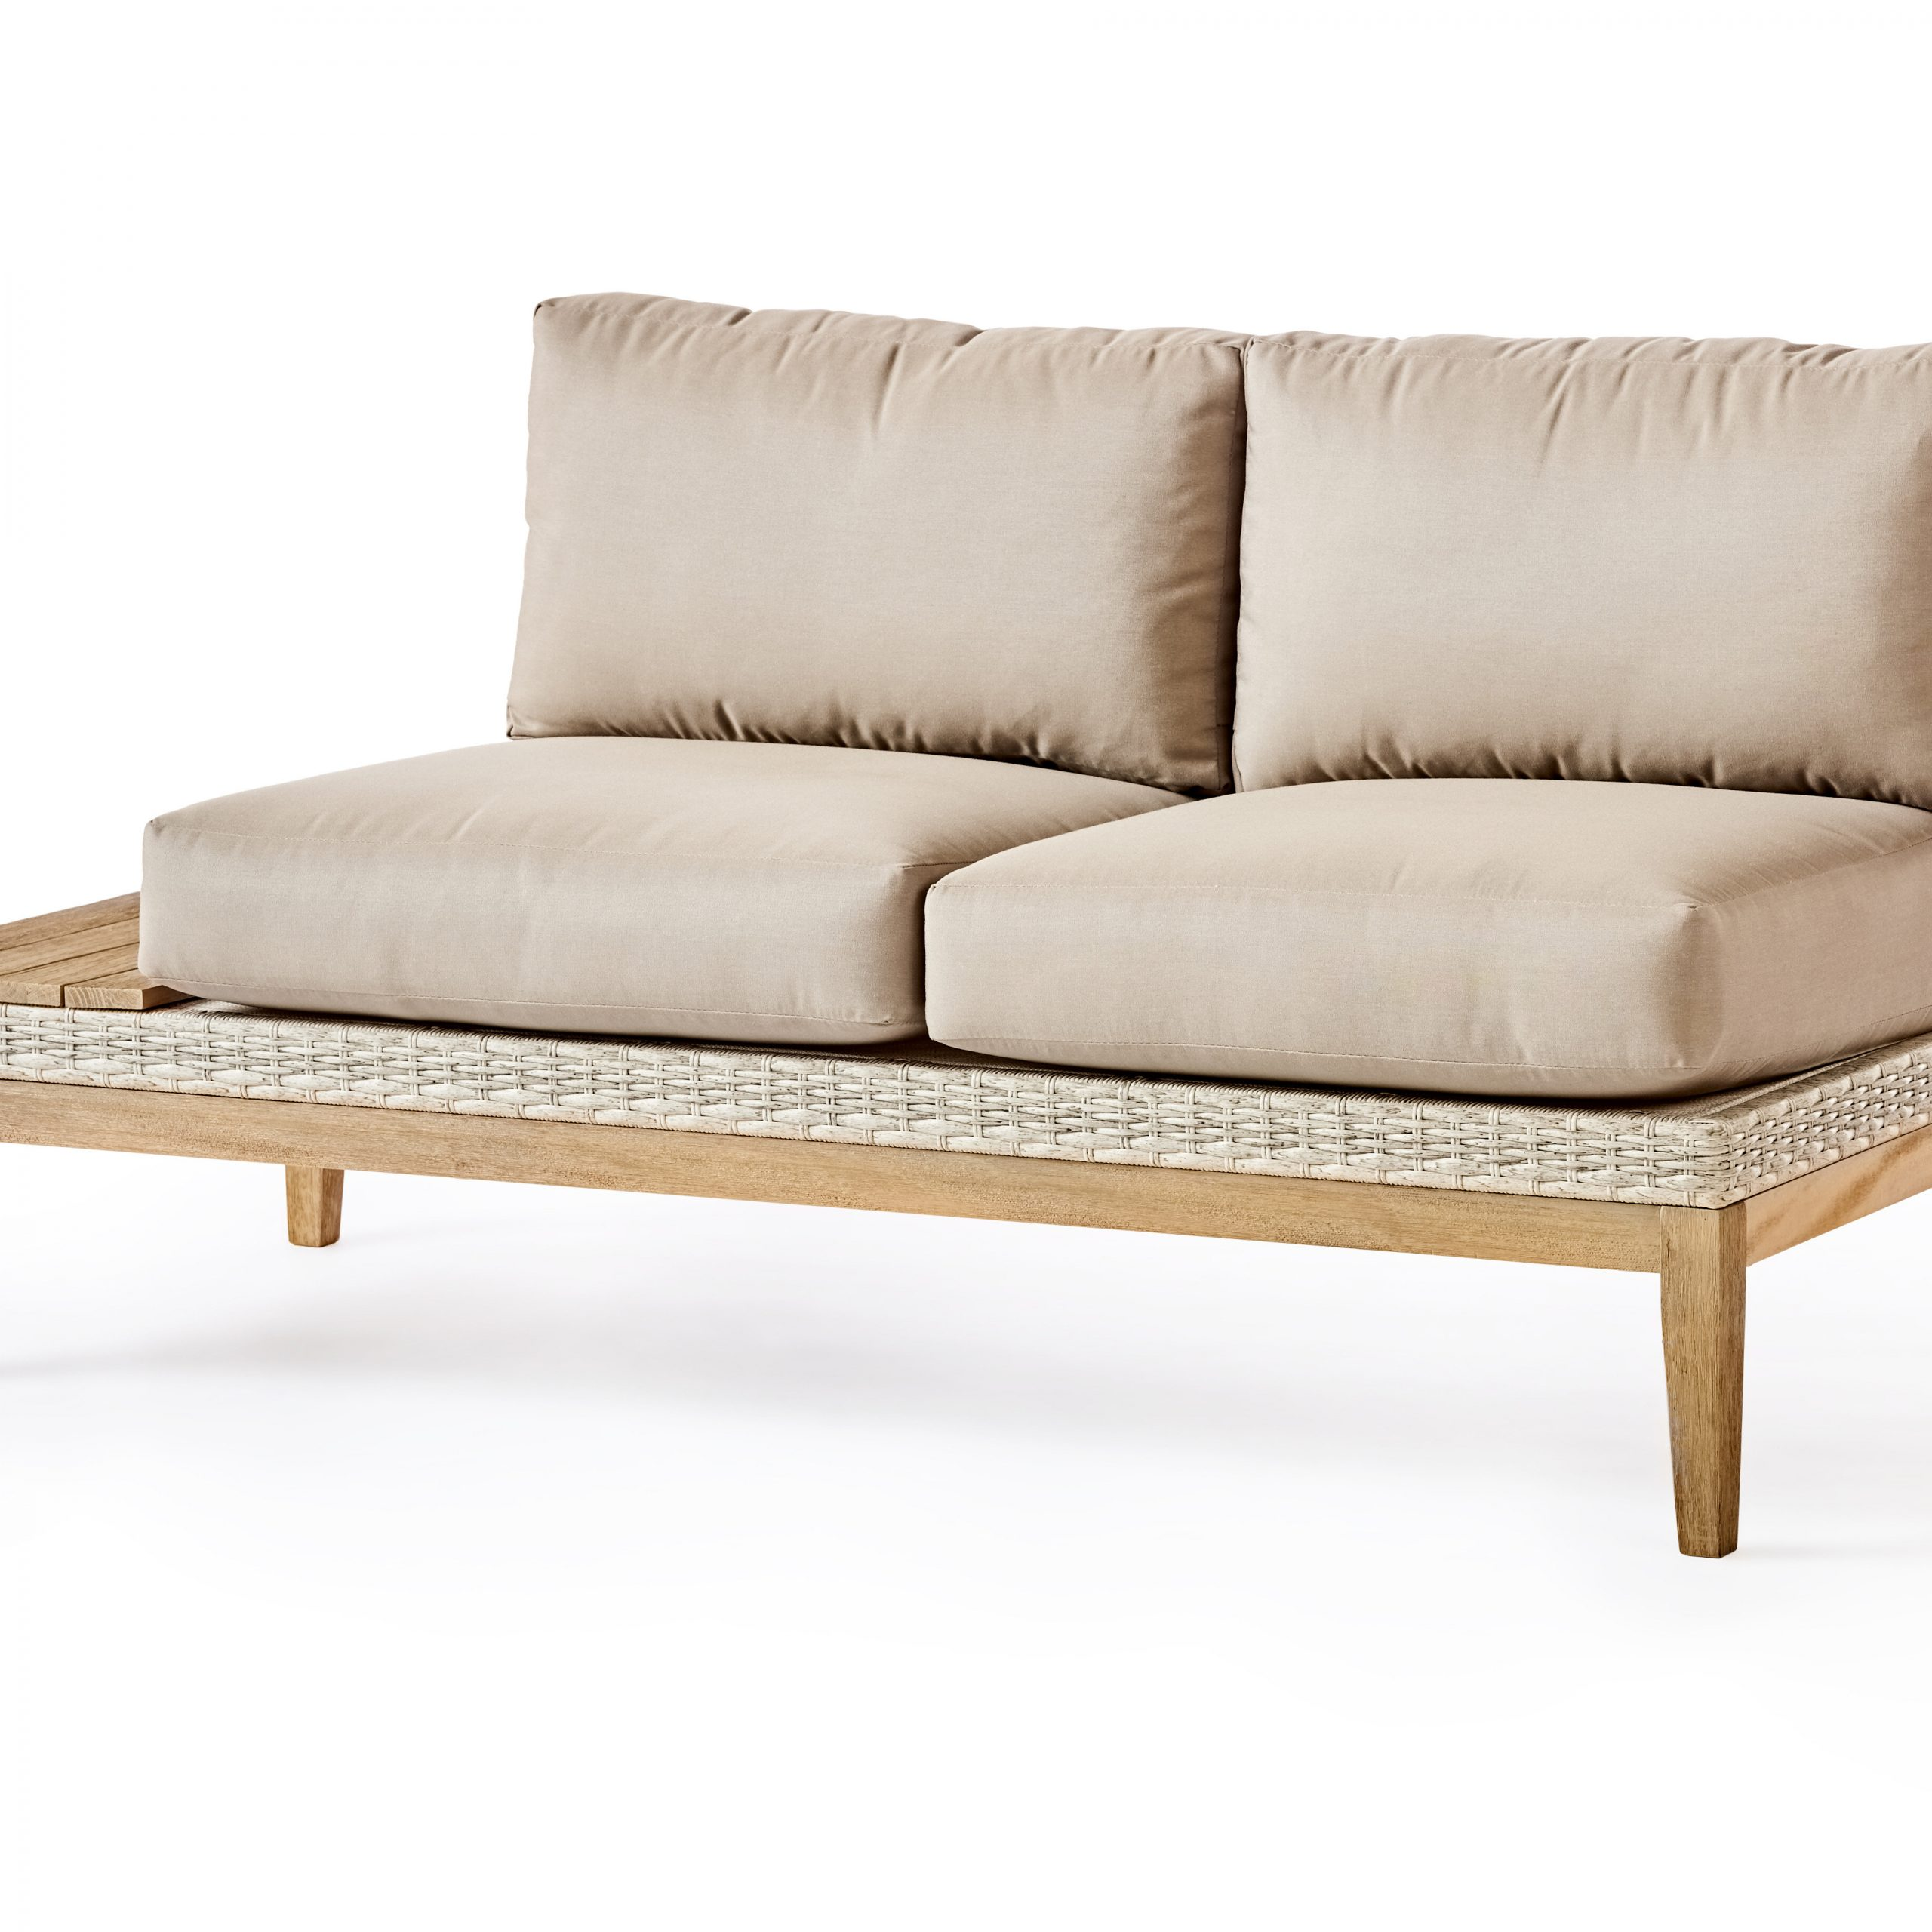 River Darnell Patio Loveseat With Cushions In Most Up To Date Kari Loveseats With Sunbrella Cushions (Gallery 3 of 25)